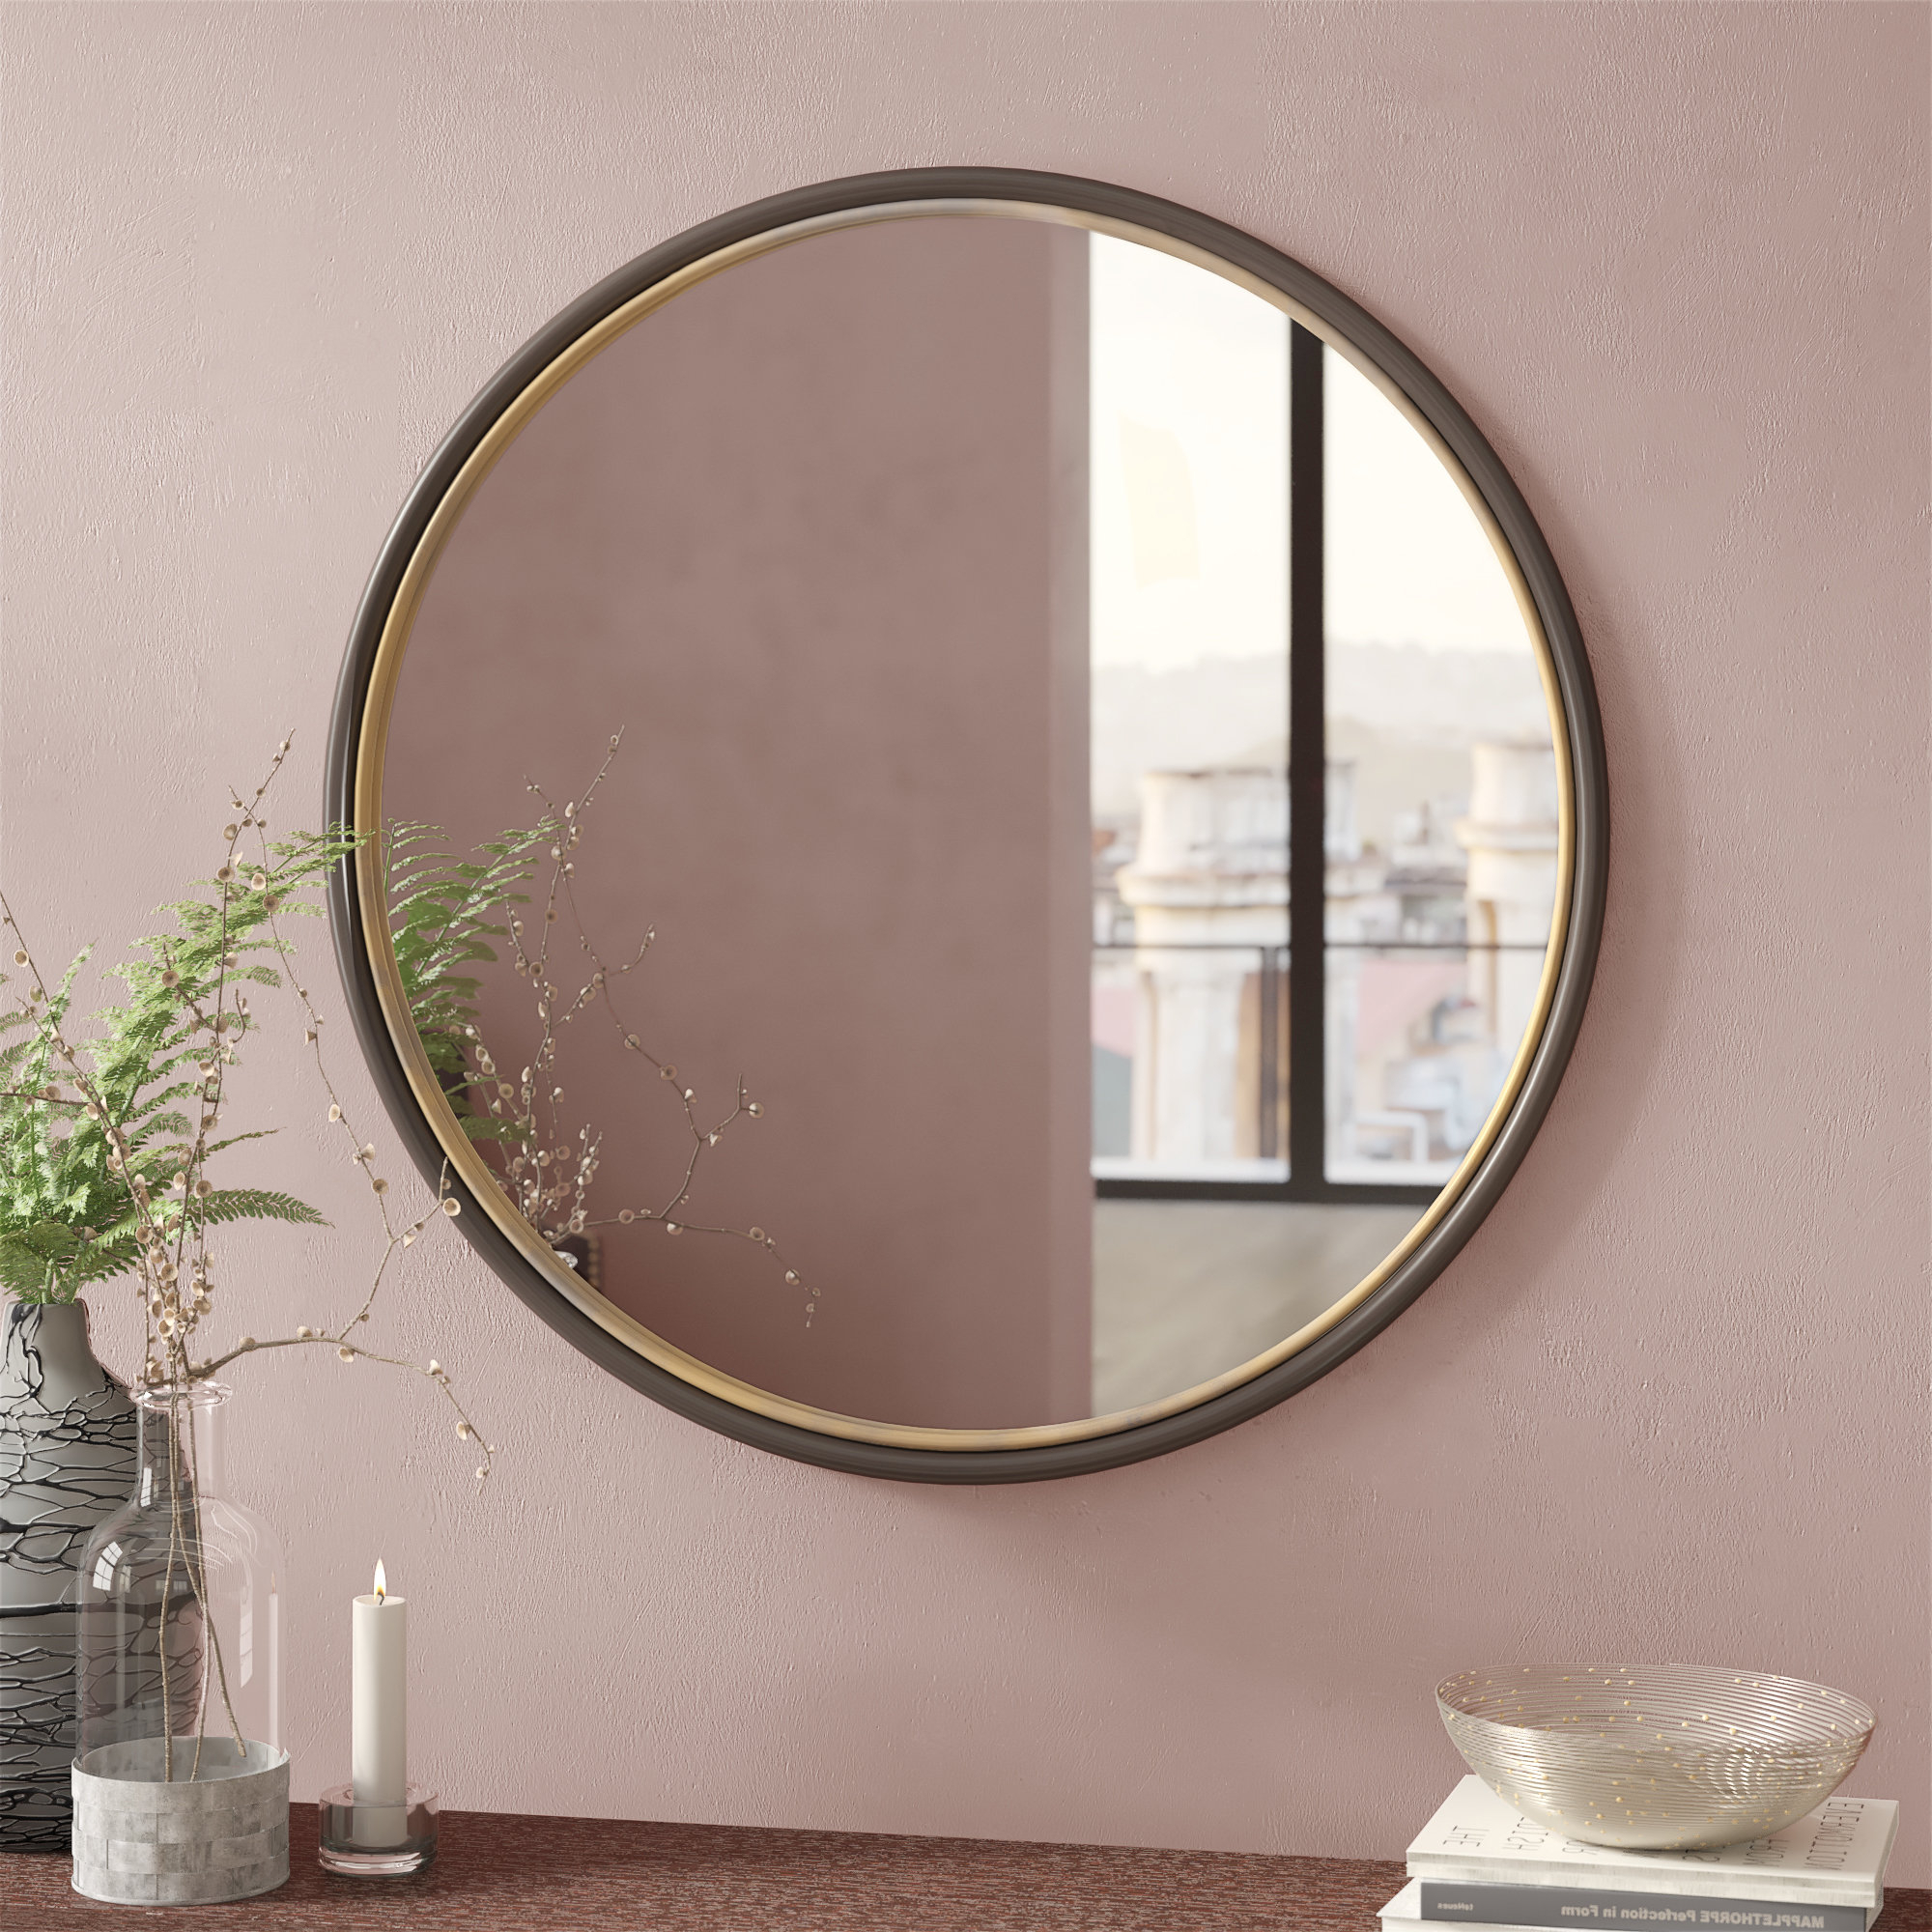 Mahanoy Modern And Contemporary Distressed Accent Mirrors With Regard To 2019 Labriola Modern & Contemporary Bathroom/vanity Mirror (View 10 of 20)